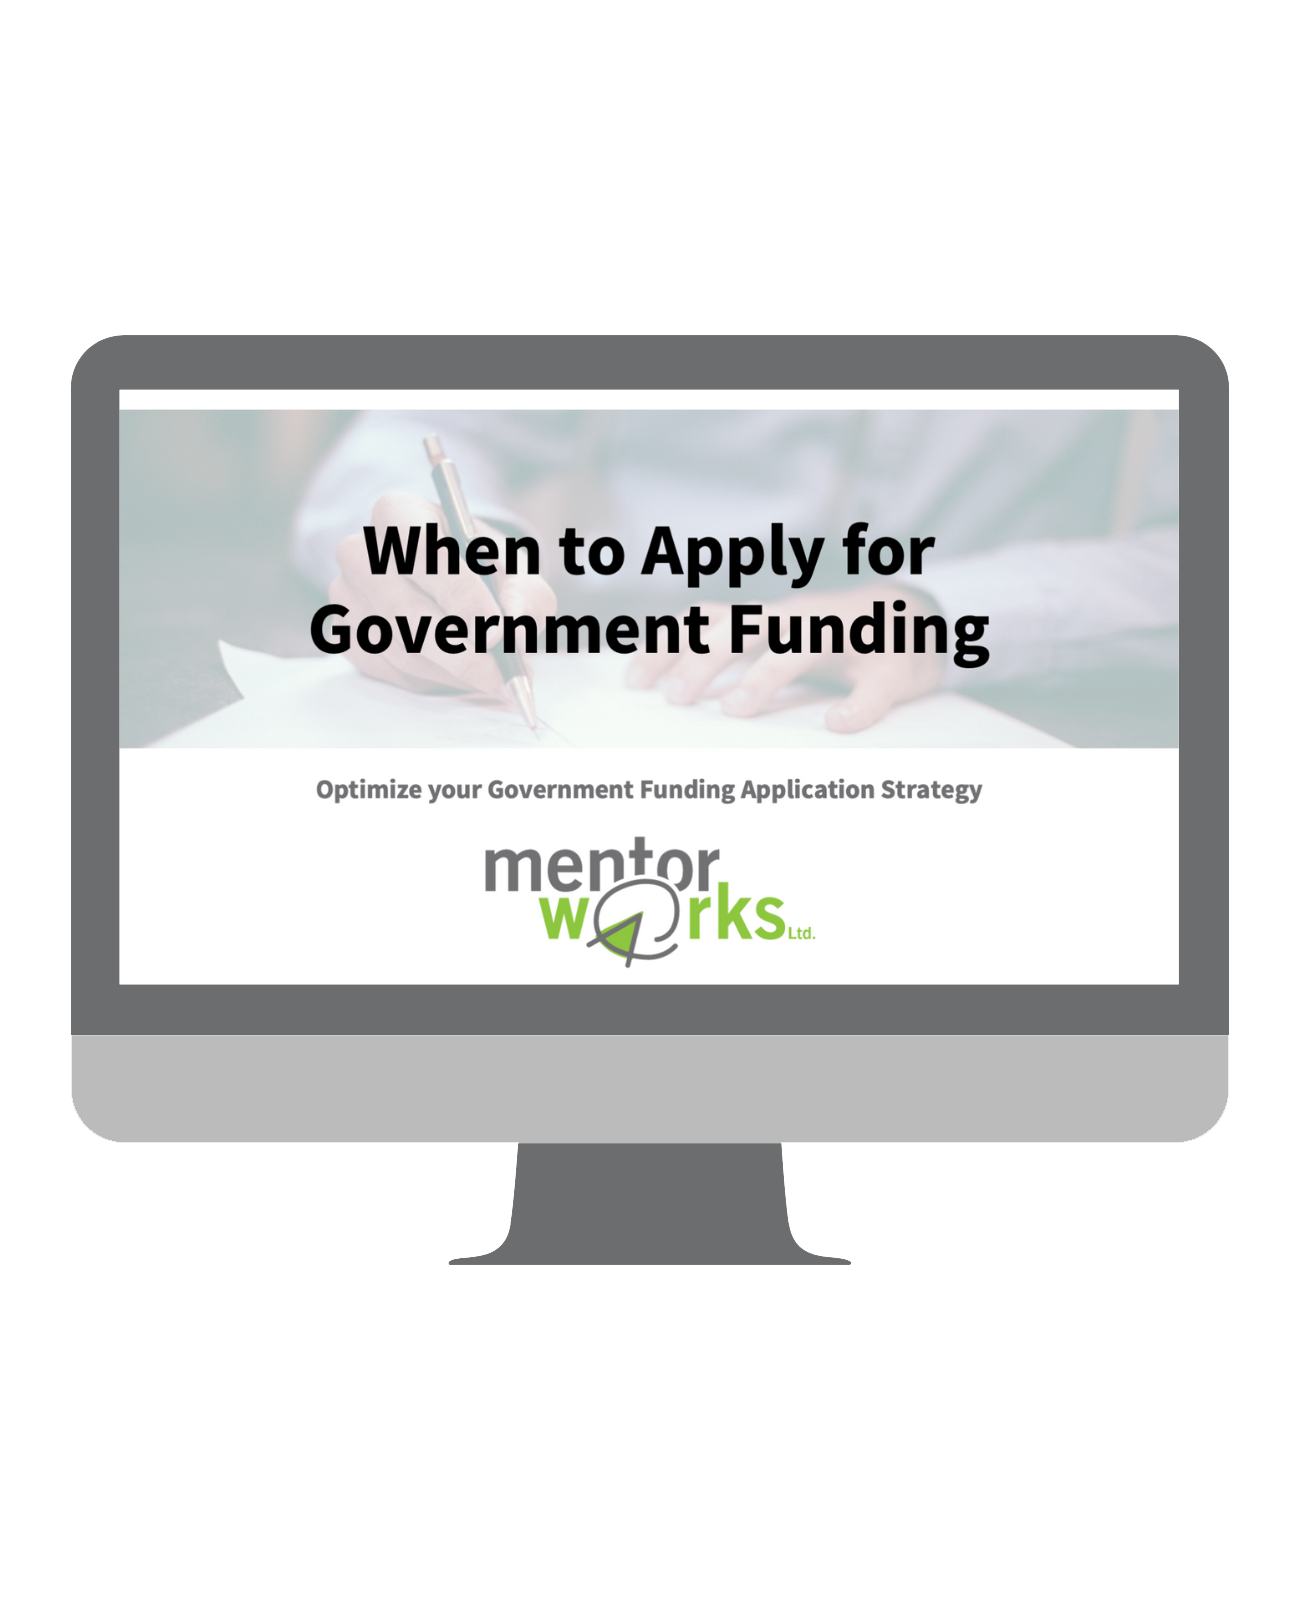 When to Apply for Government Funding